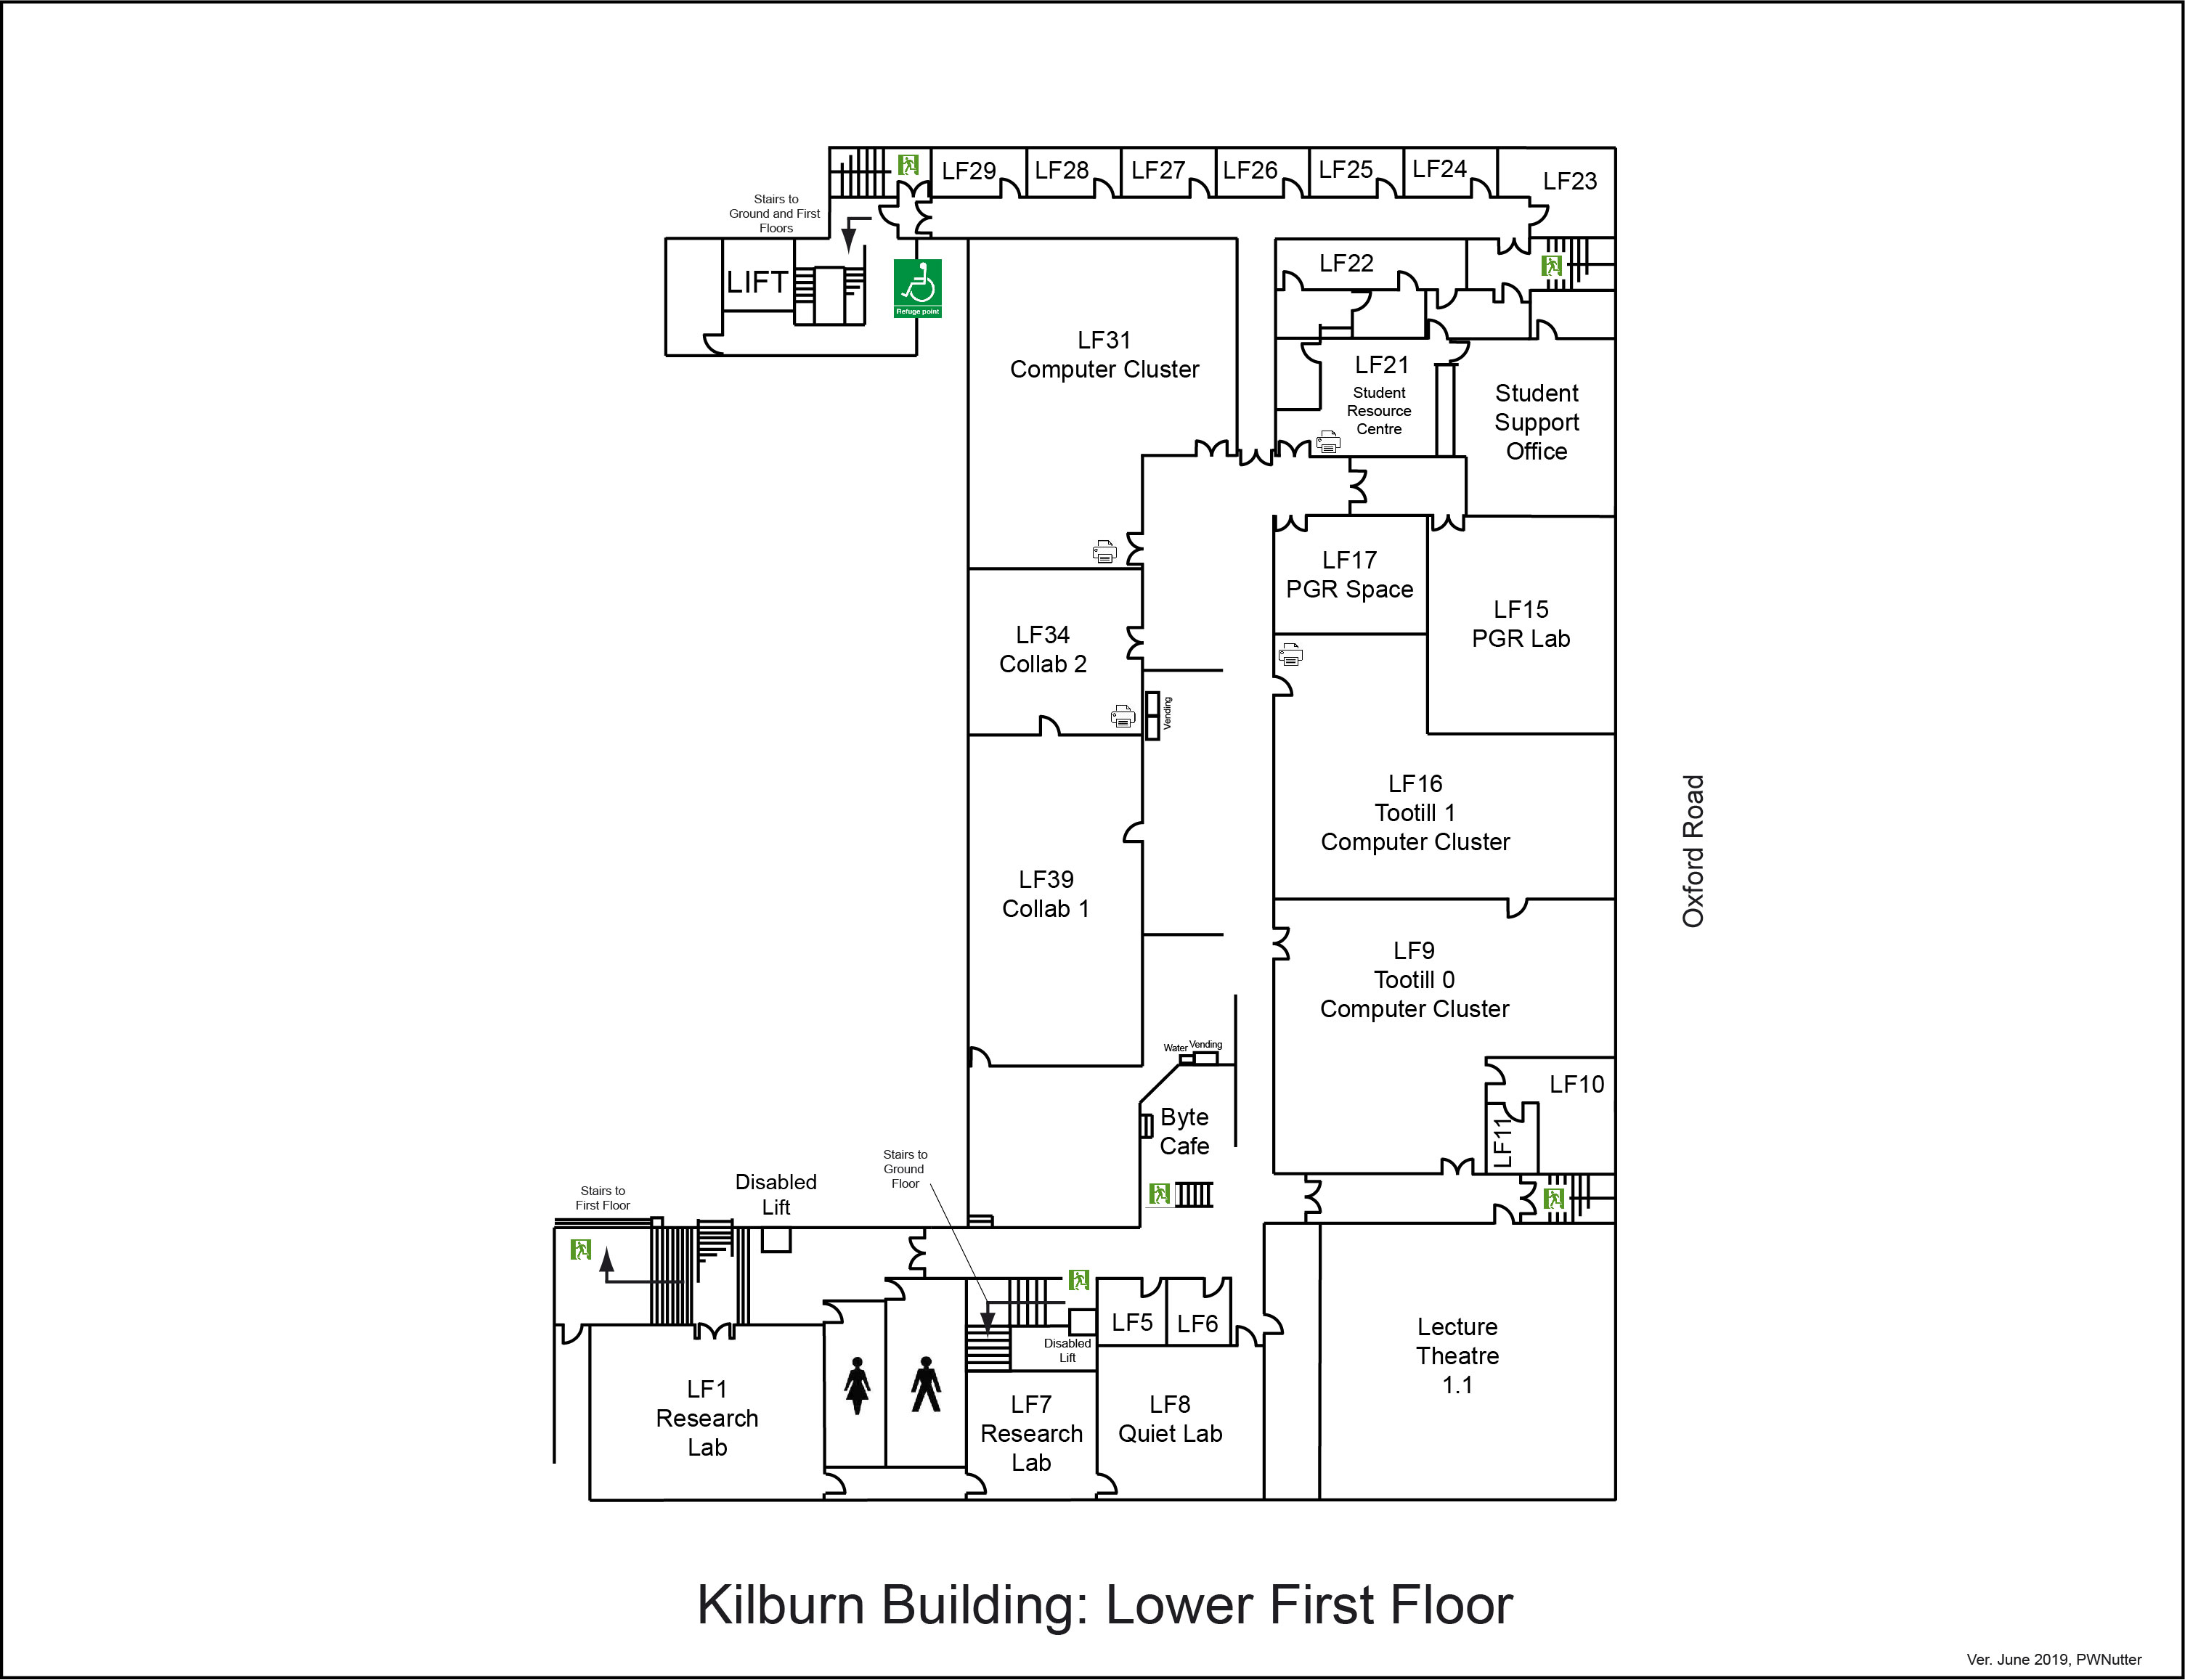 Floorplans (School of Computer Science - The University of Manchester)